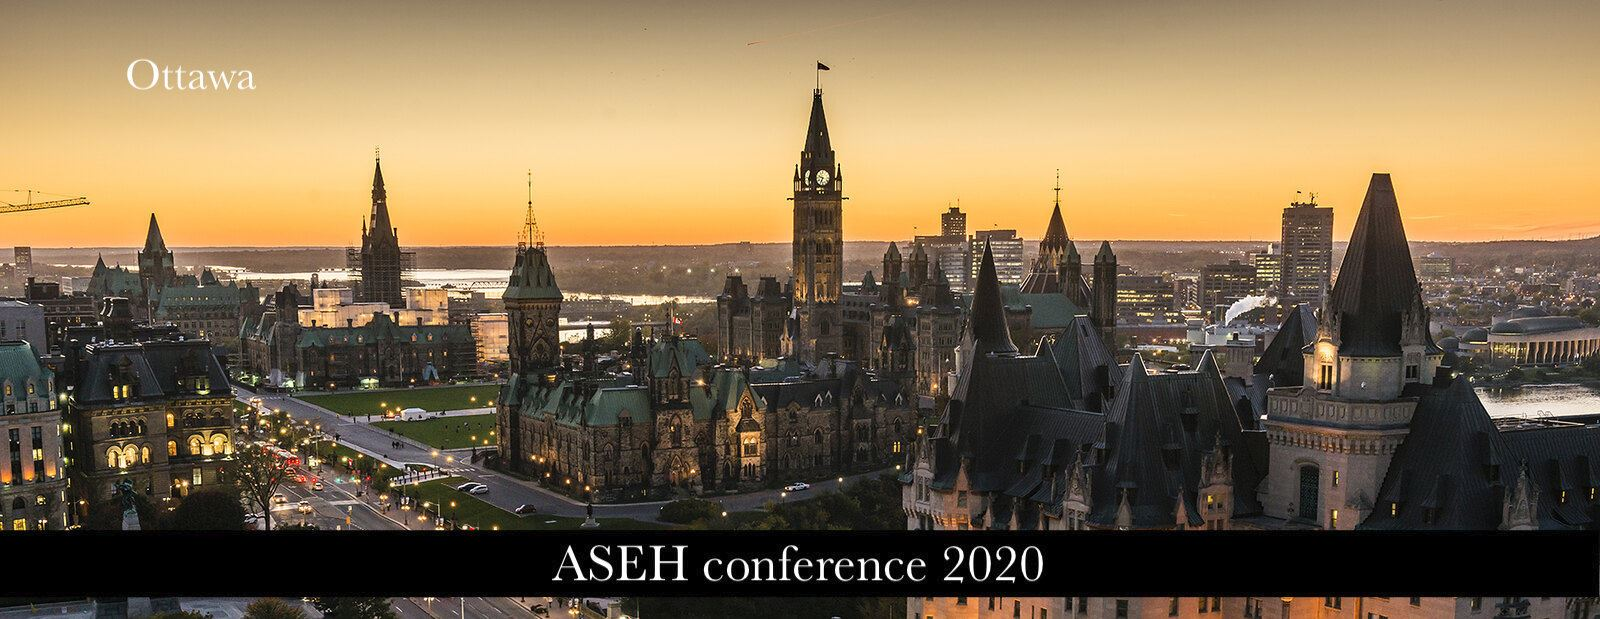 ASEH 2020